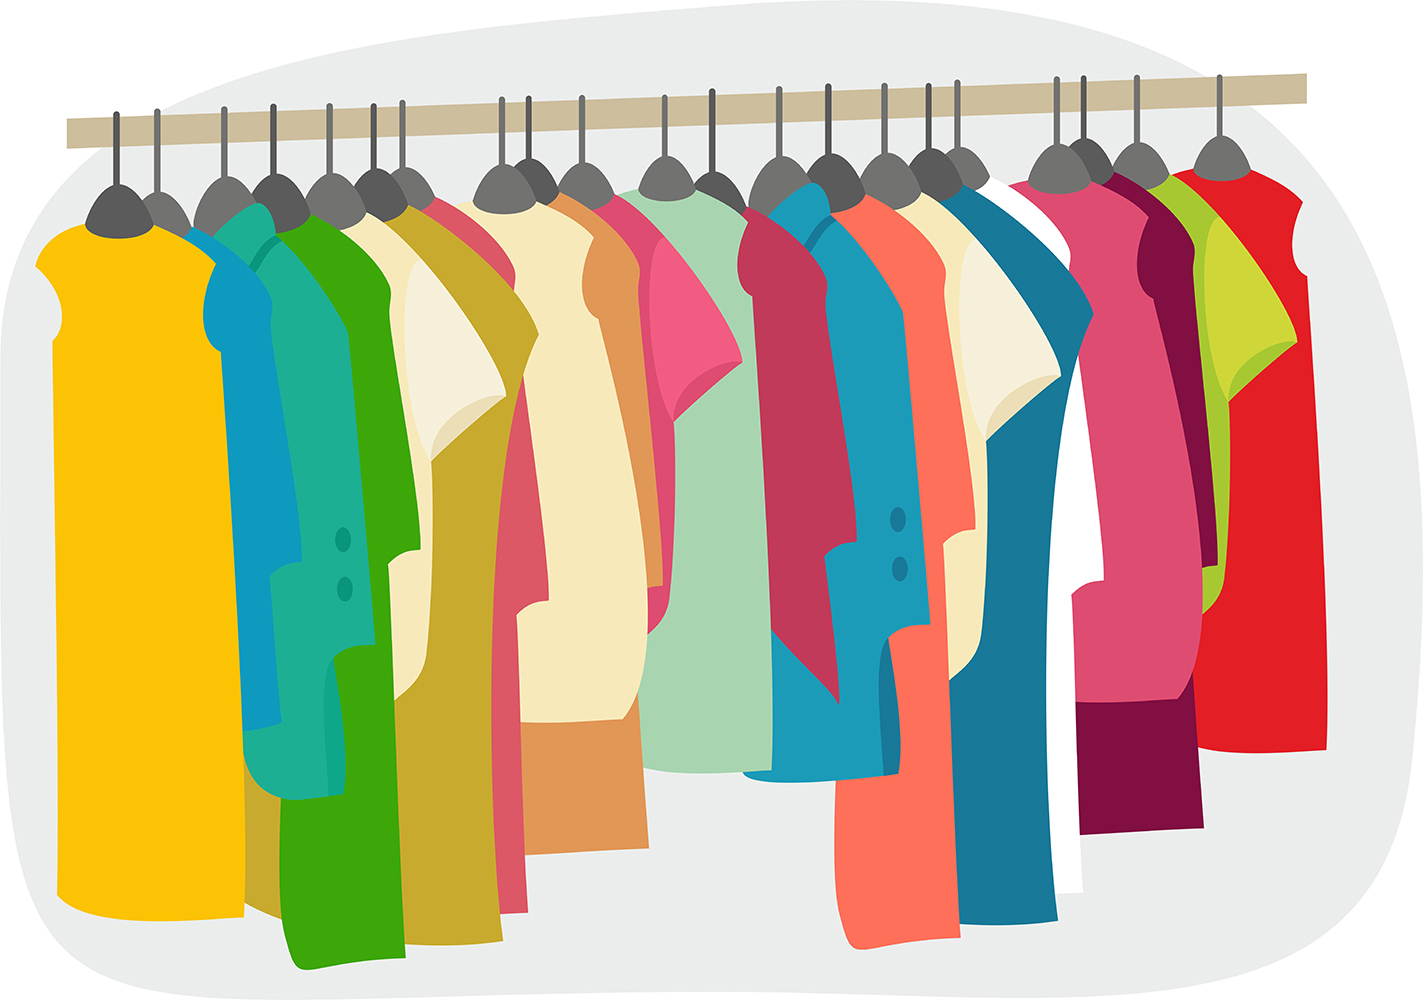 clothes clipart images - photo #22